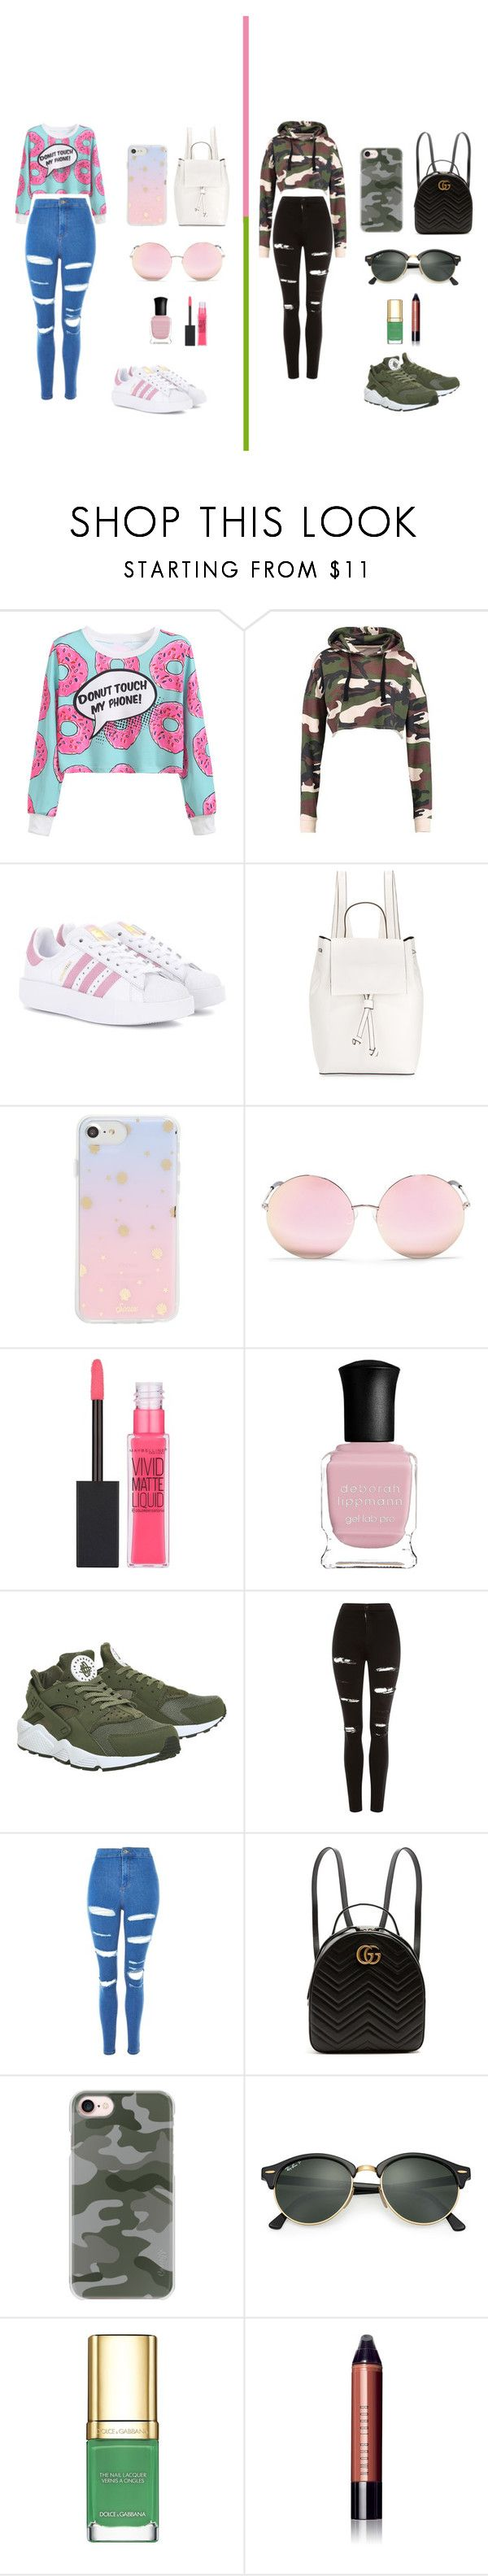 """#Candy −Camuflage"" by noguerarosangel ❤ liked on Polyvore featuring WithChic, adidas Originals, French Connection, Sonix, Matthew Williamson, Maybelline, Deborah Lippmann, NIKE, Topshop and Gucci"